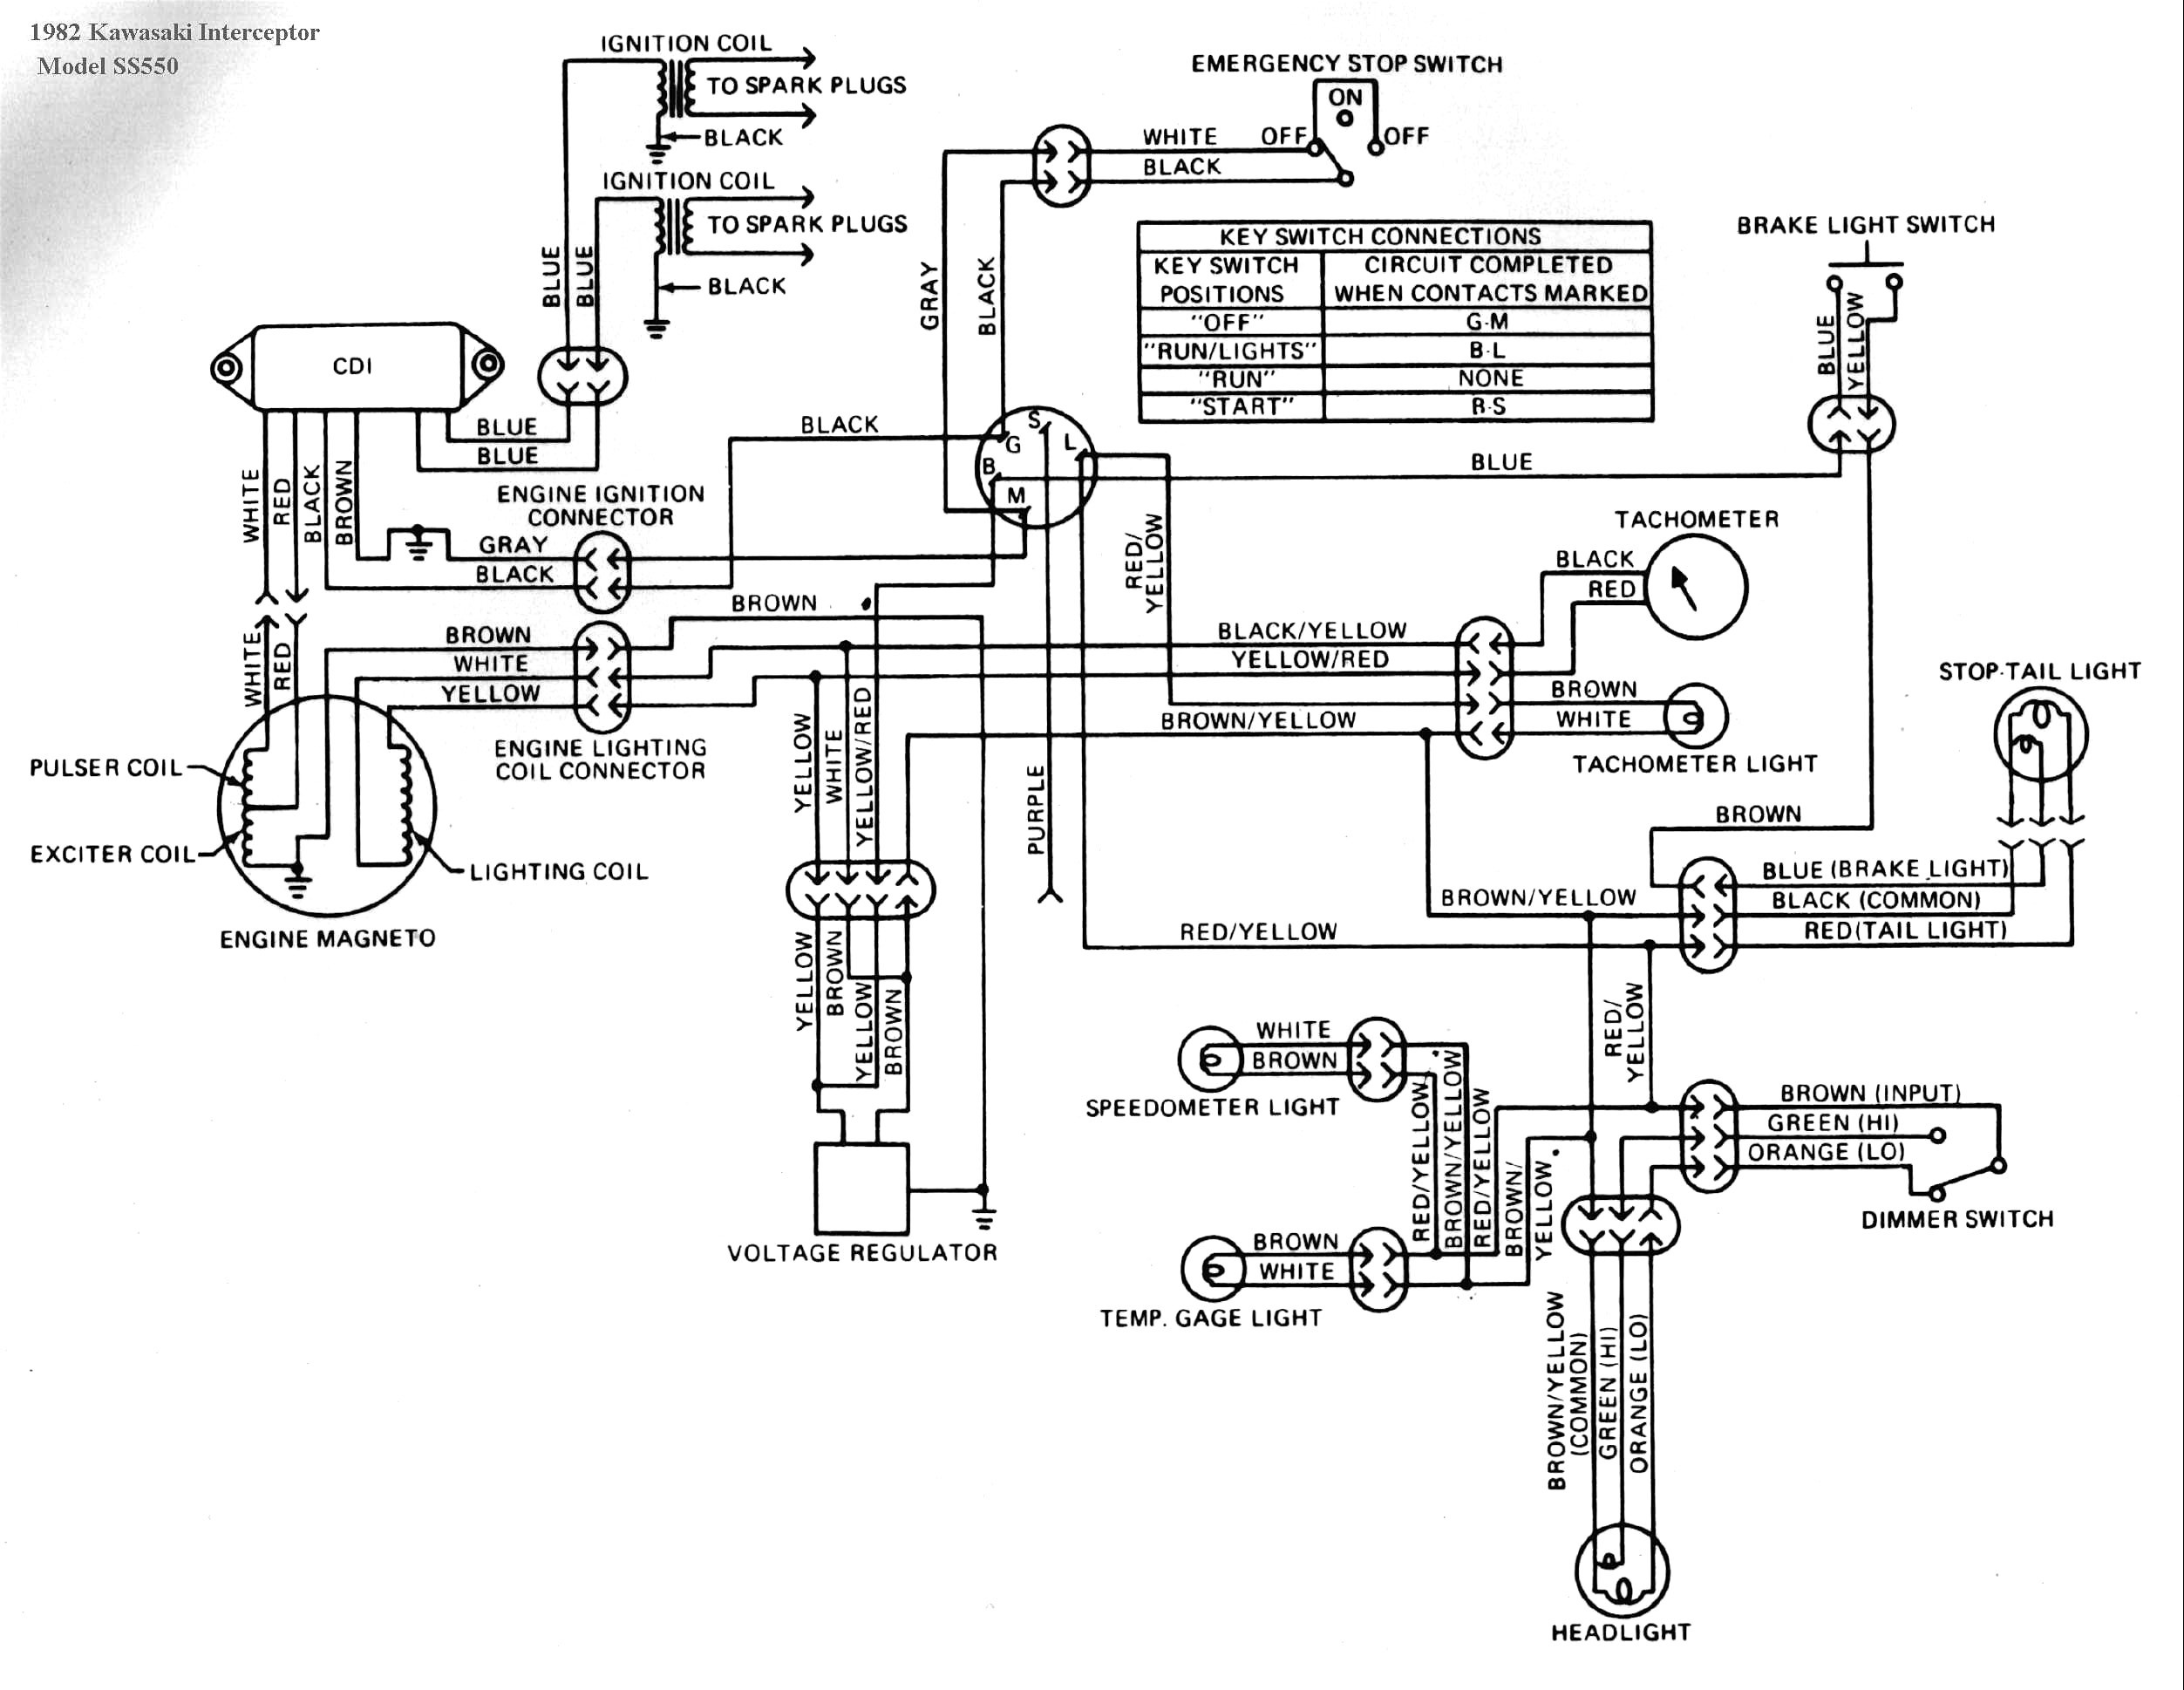 Kawasaki Fb460v Wiring Schematic - Wiring Diagram Options on radio harness, pony harness, battery harness, amp bypass harness, engine harness, maxi-seal harness, suspension harness, nakamichi harness, oxygen sensor extension harness, obd0 to obd1 conversion harness, electrical harness, dog harness, fall protection harness, cable harness, safety harness, alpine stereo harness, pet harness,